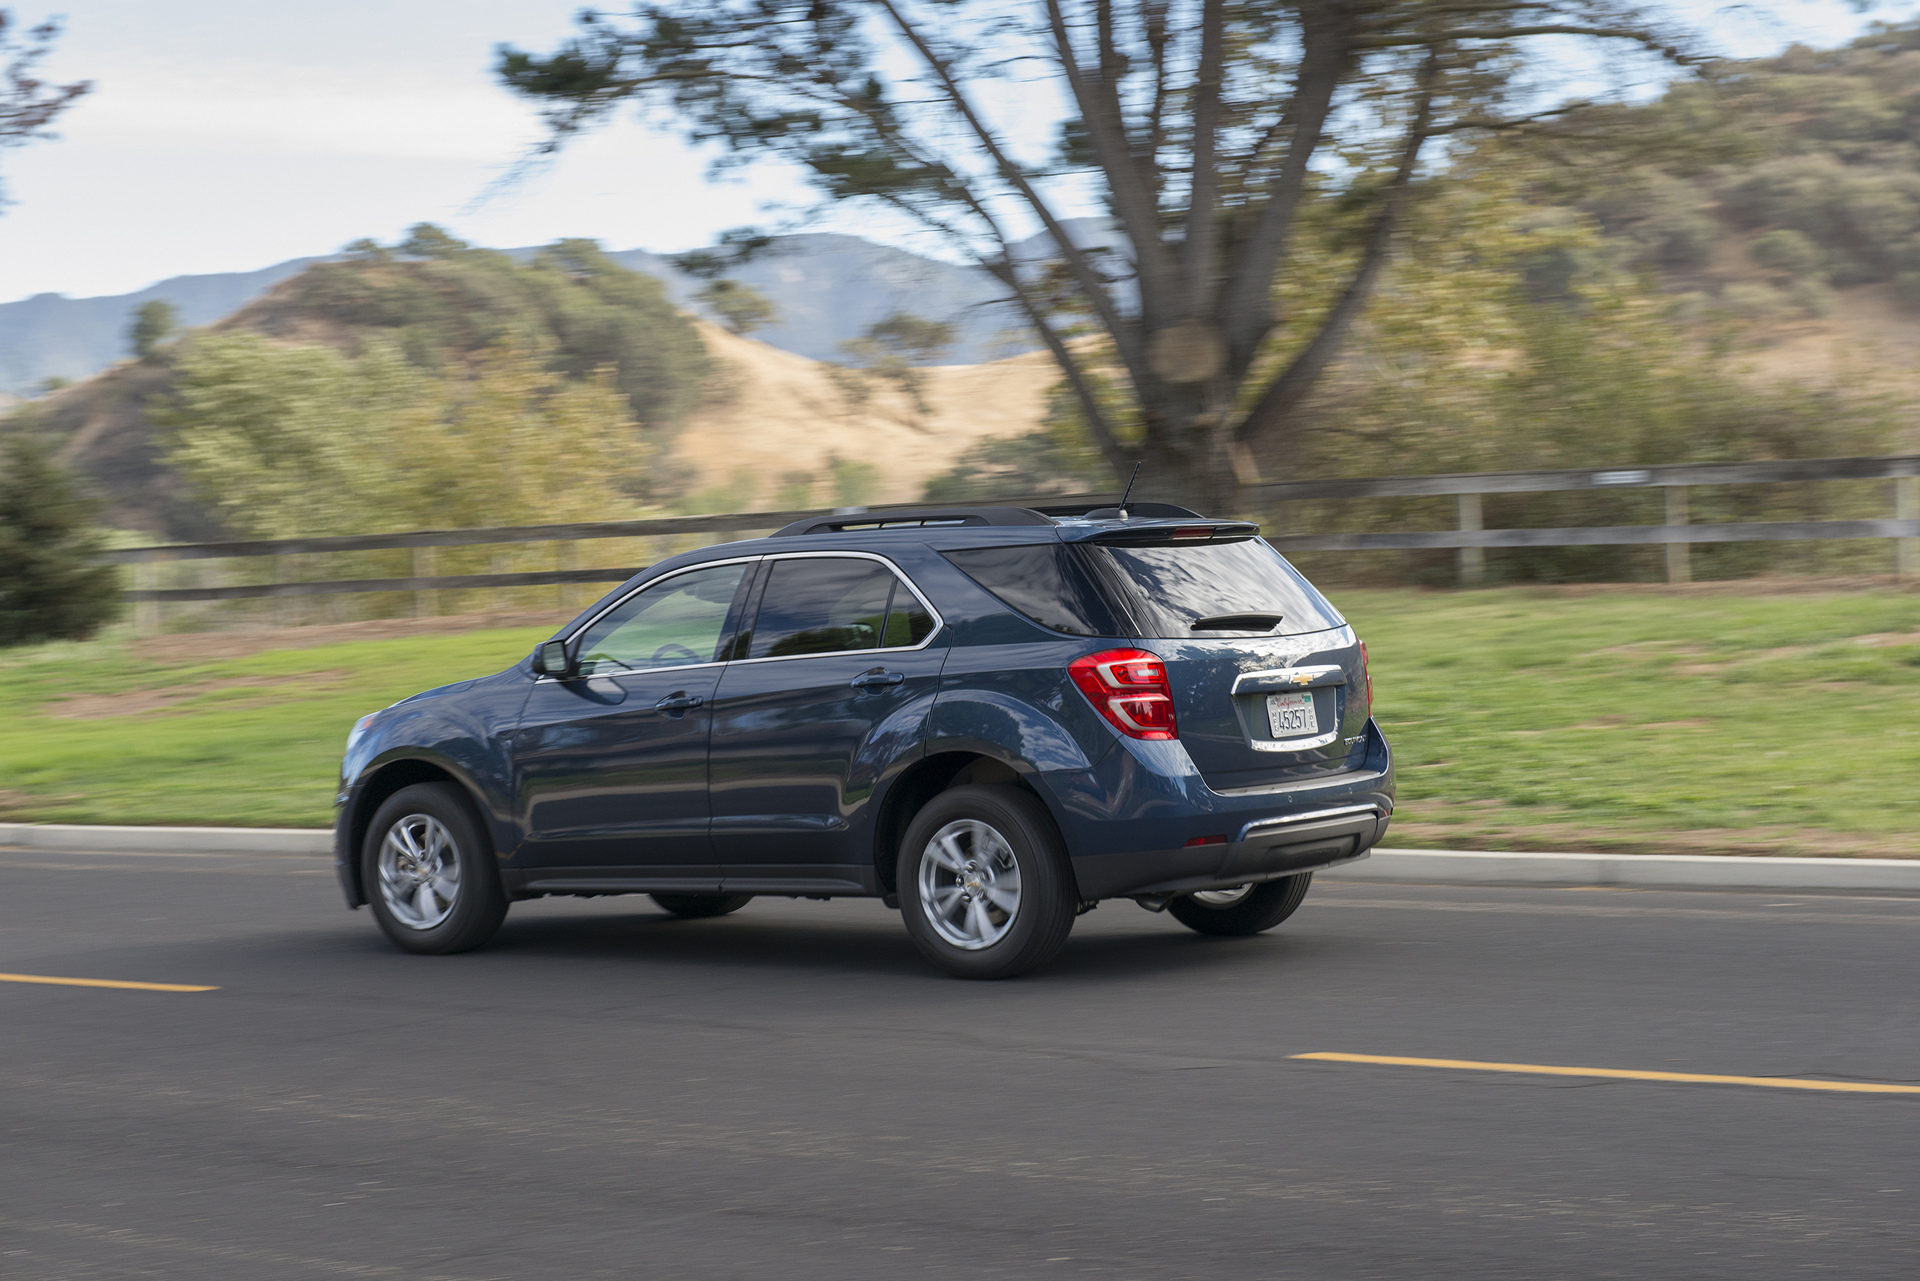 Used 2013 Chevrolet Equinox for sale - Pricing